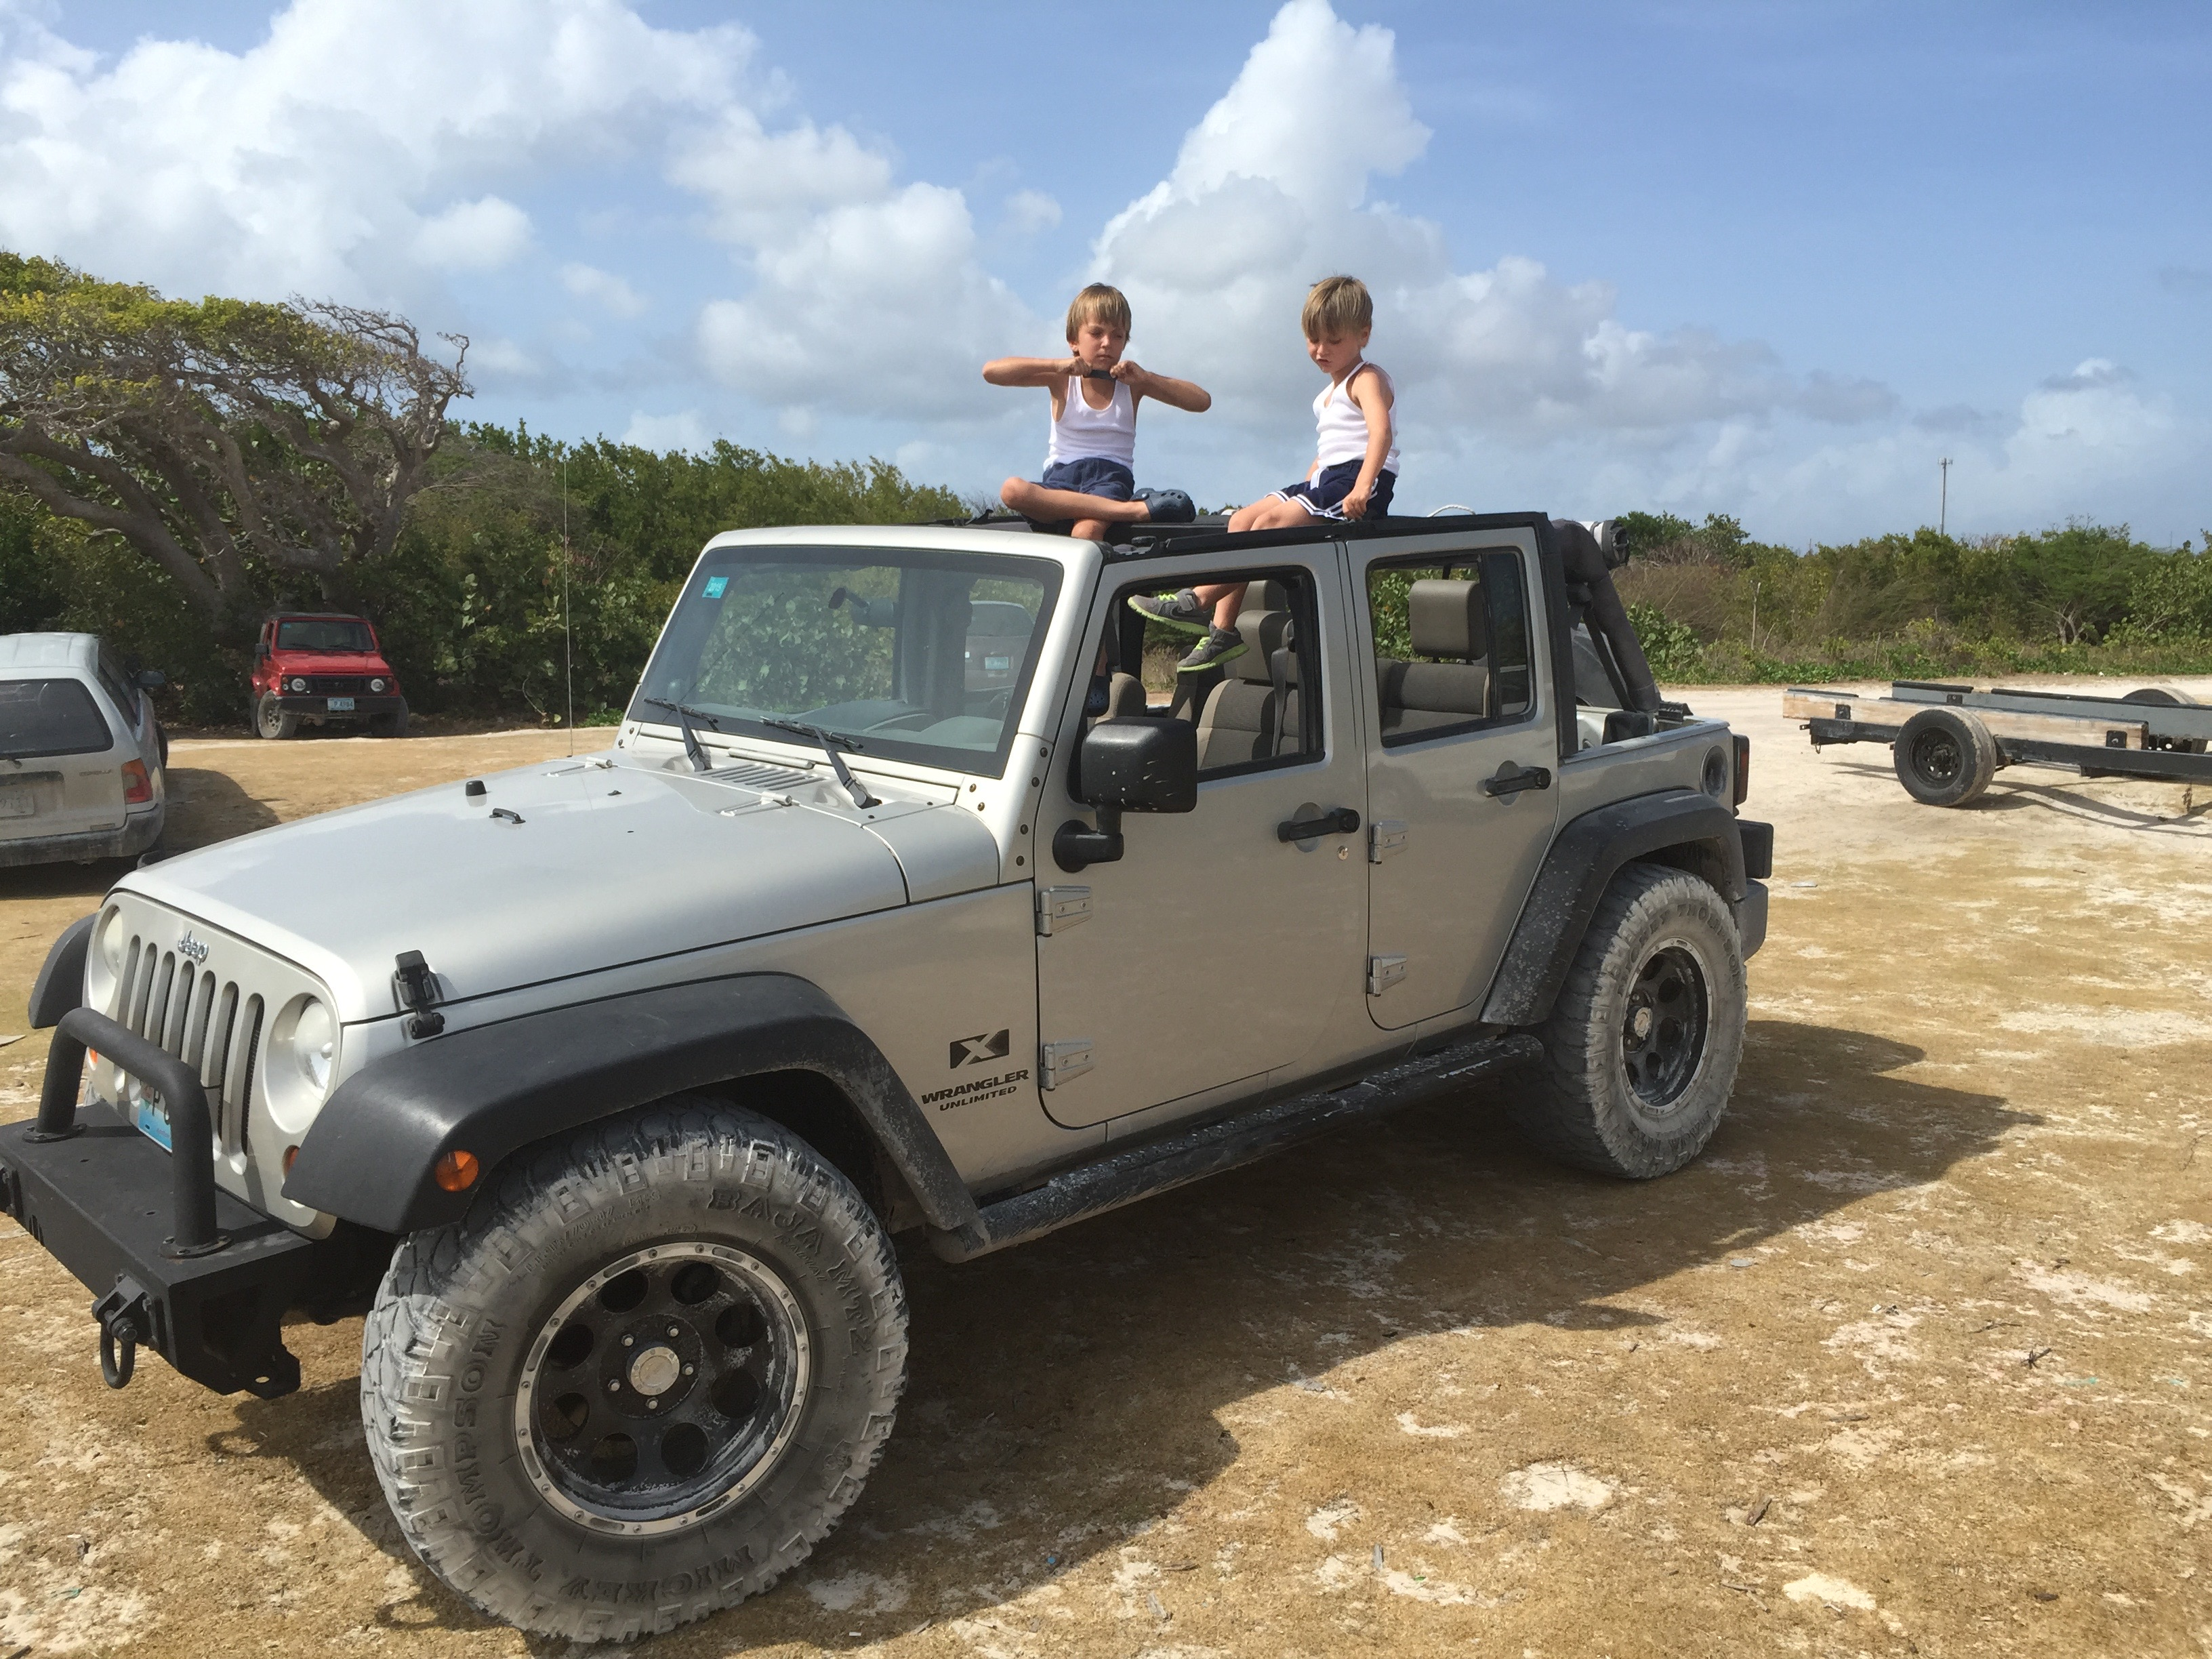 Jeep tour of the island